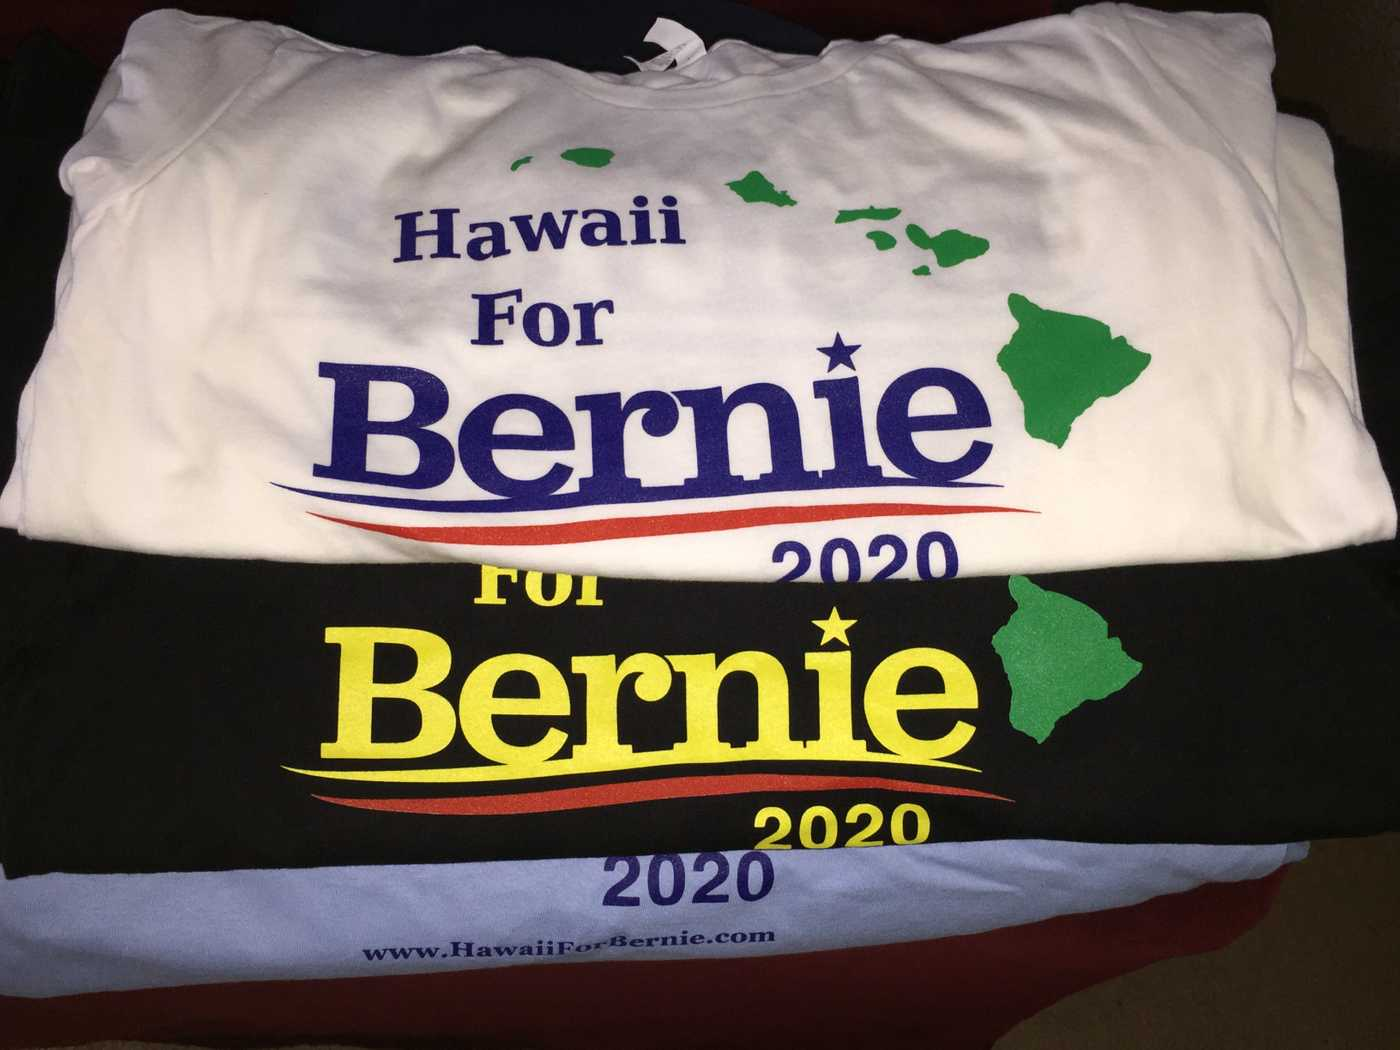 2020 Hawaii For Bernie Shirt (white/blue/black)